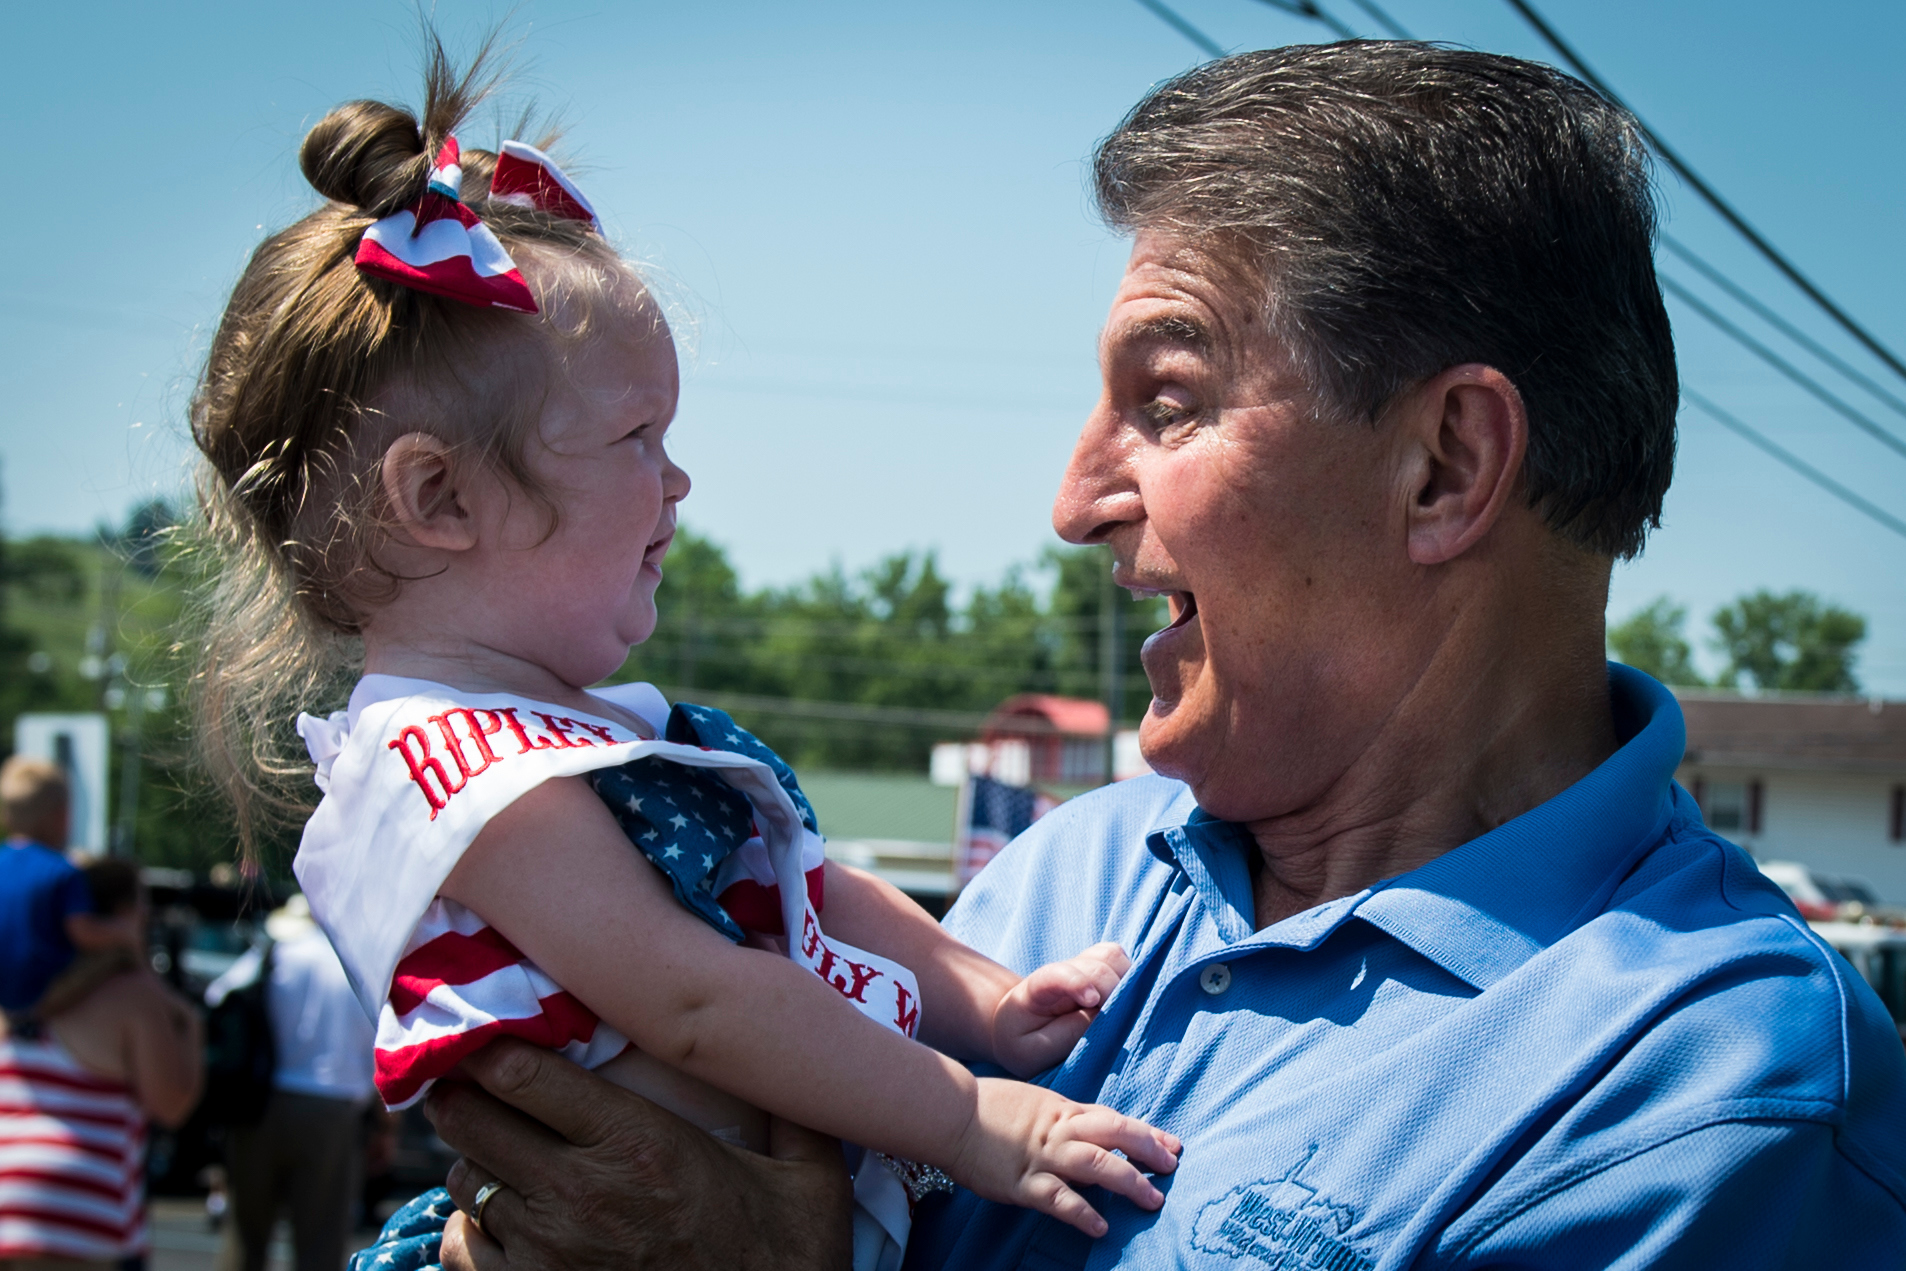 Sen. Joe Manchin, R-W.Va., Ava Lott, the 2018 Ripley 4th of July Wee Miss before the start of the Ripley 4th of July Grand Parade in Ripley, West Virginia Wednesday July 4, 2018. (Photo By Sarah Silbiger/CQ Roll Call)